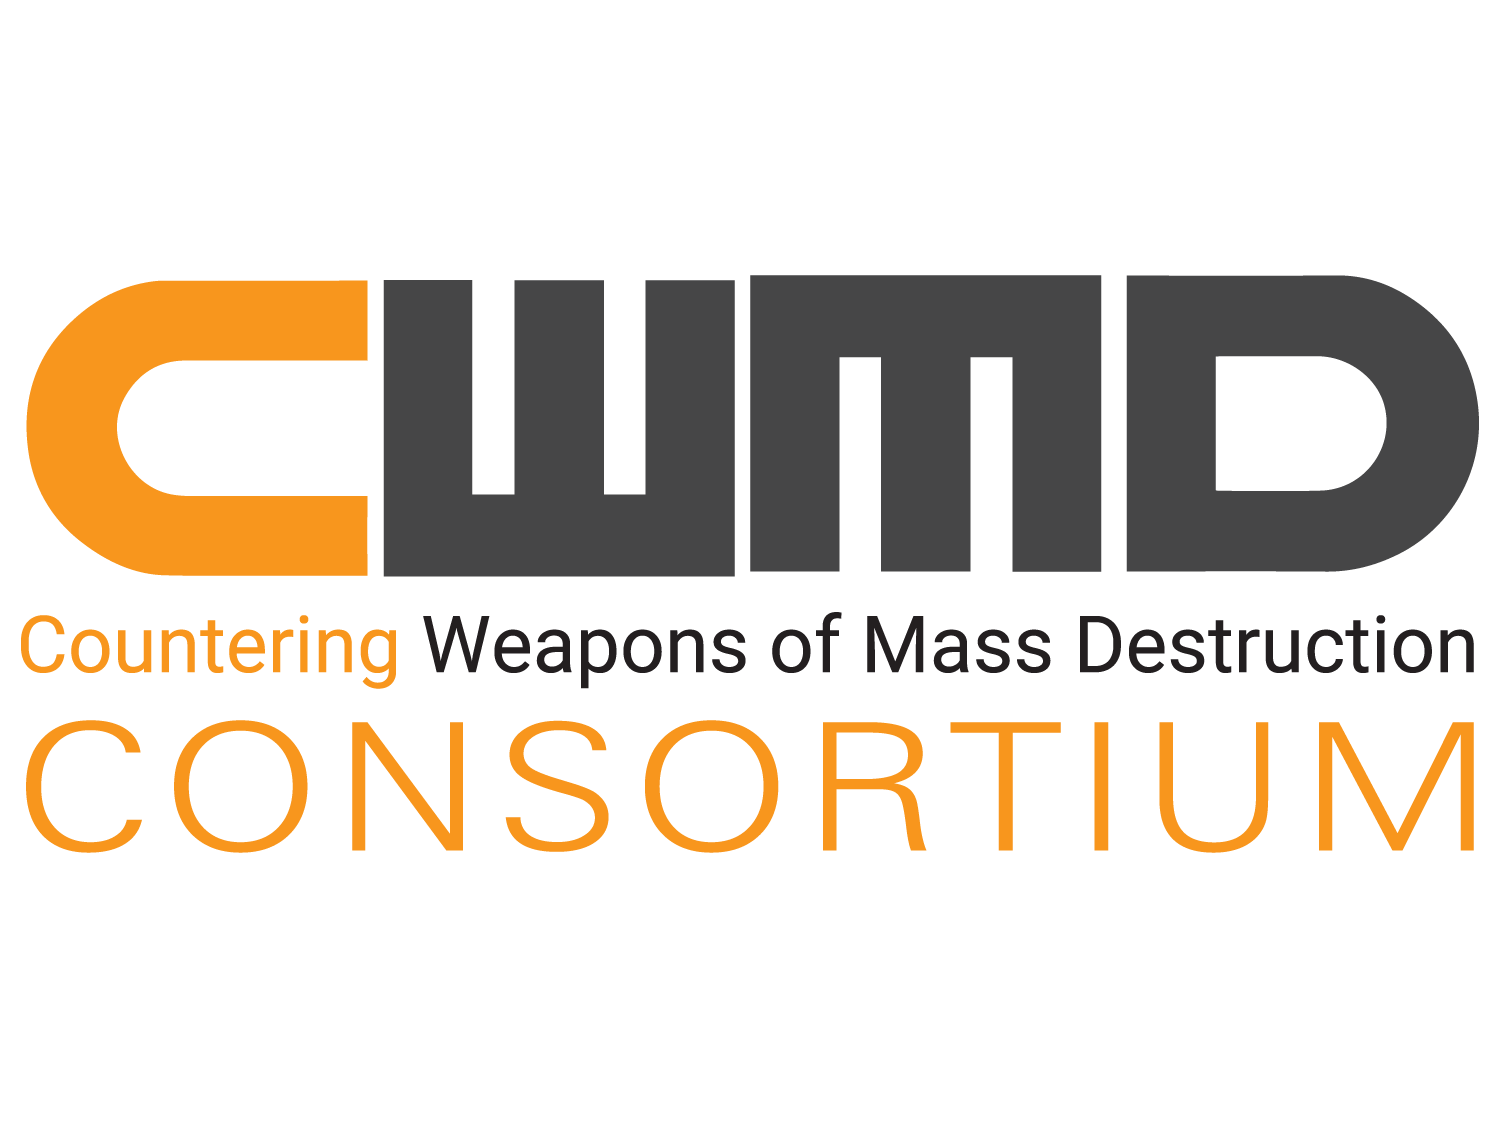 Countering Weapons of Mass Destruction logo